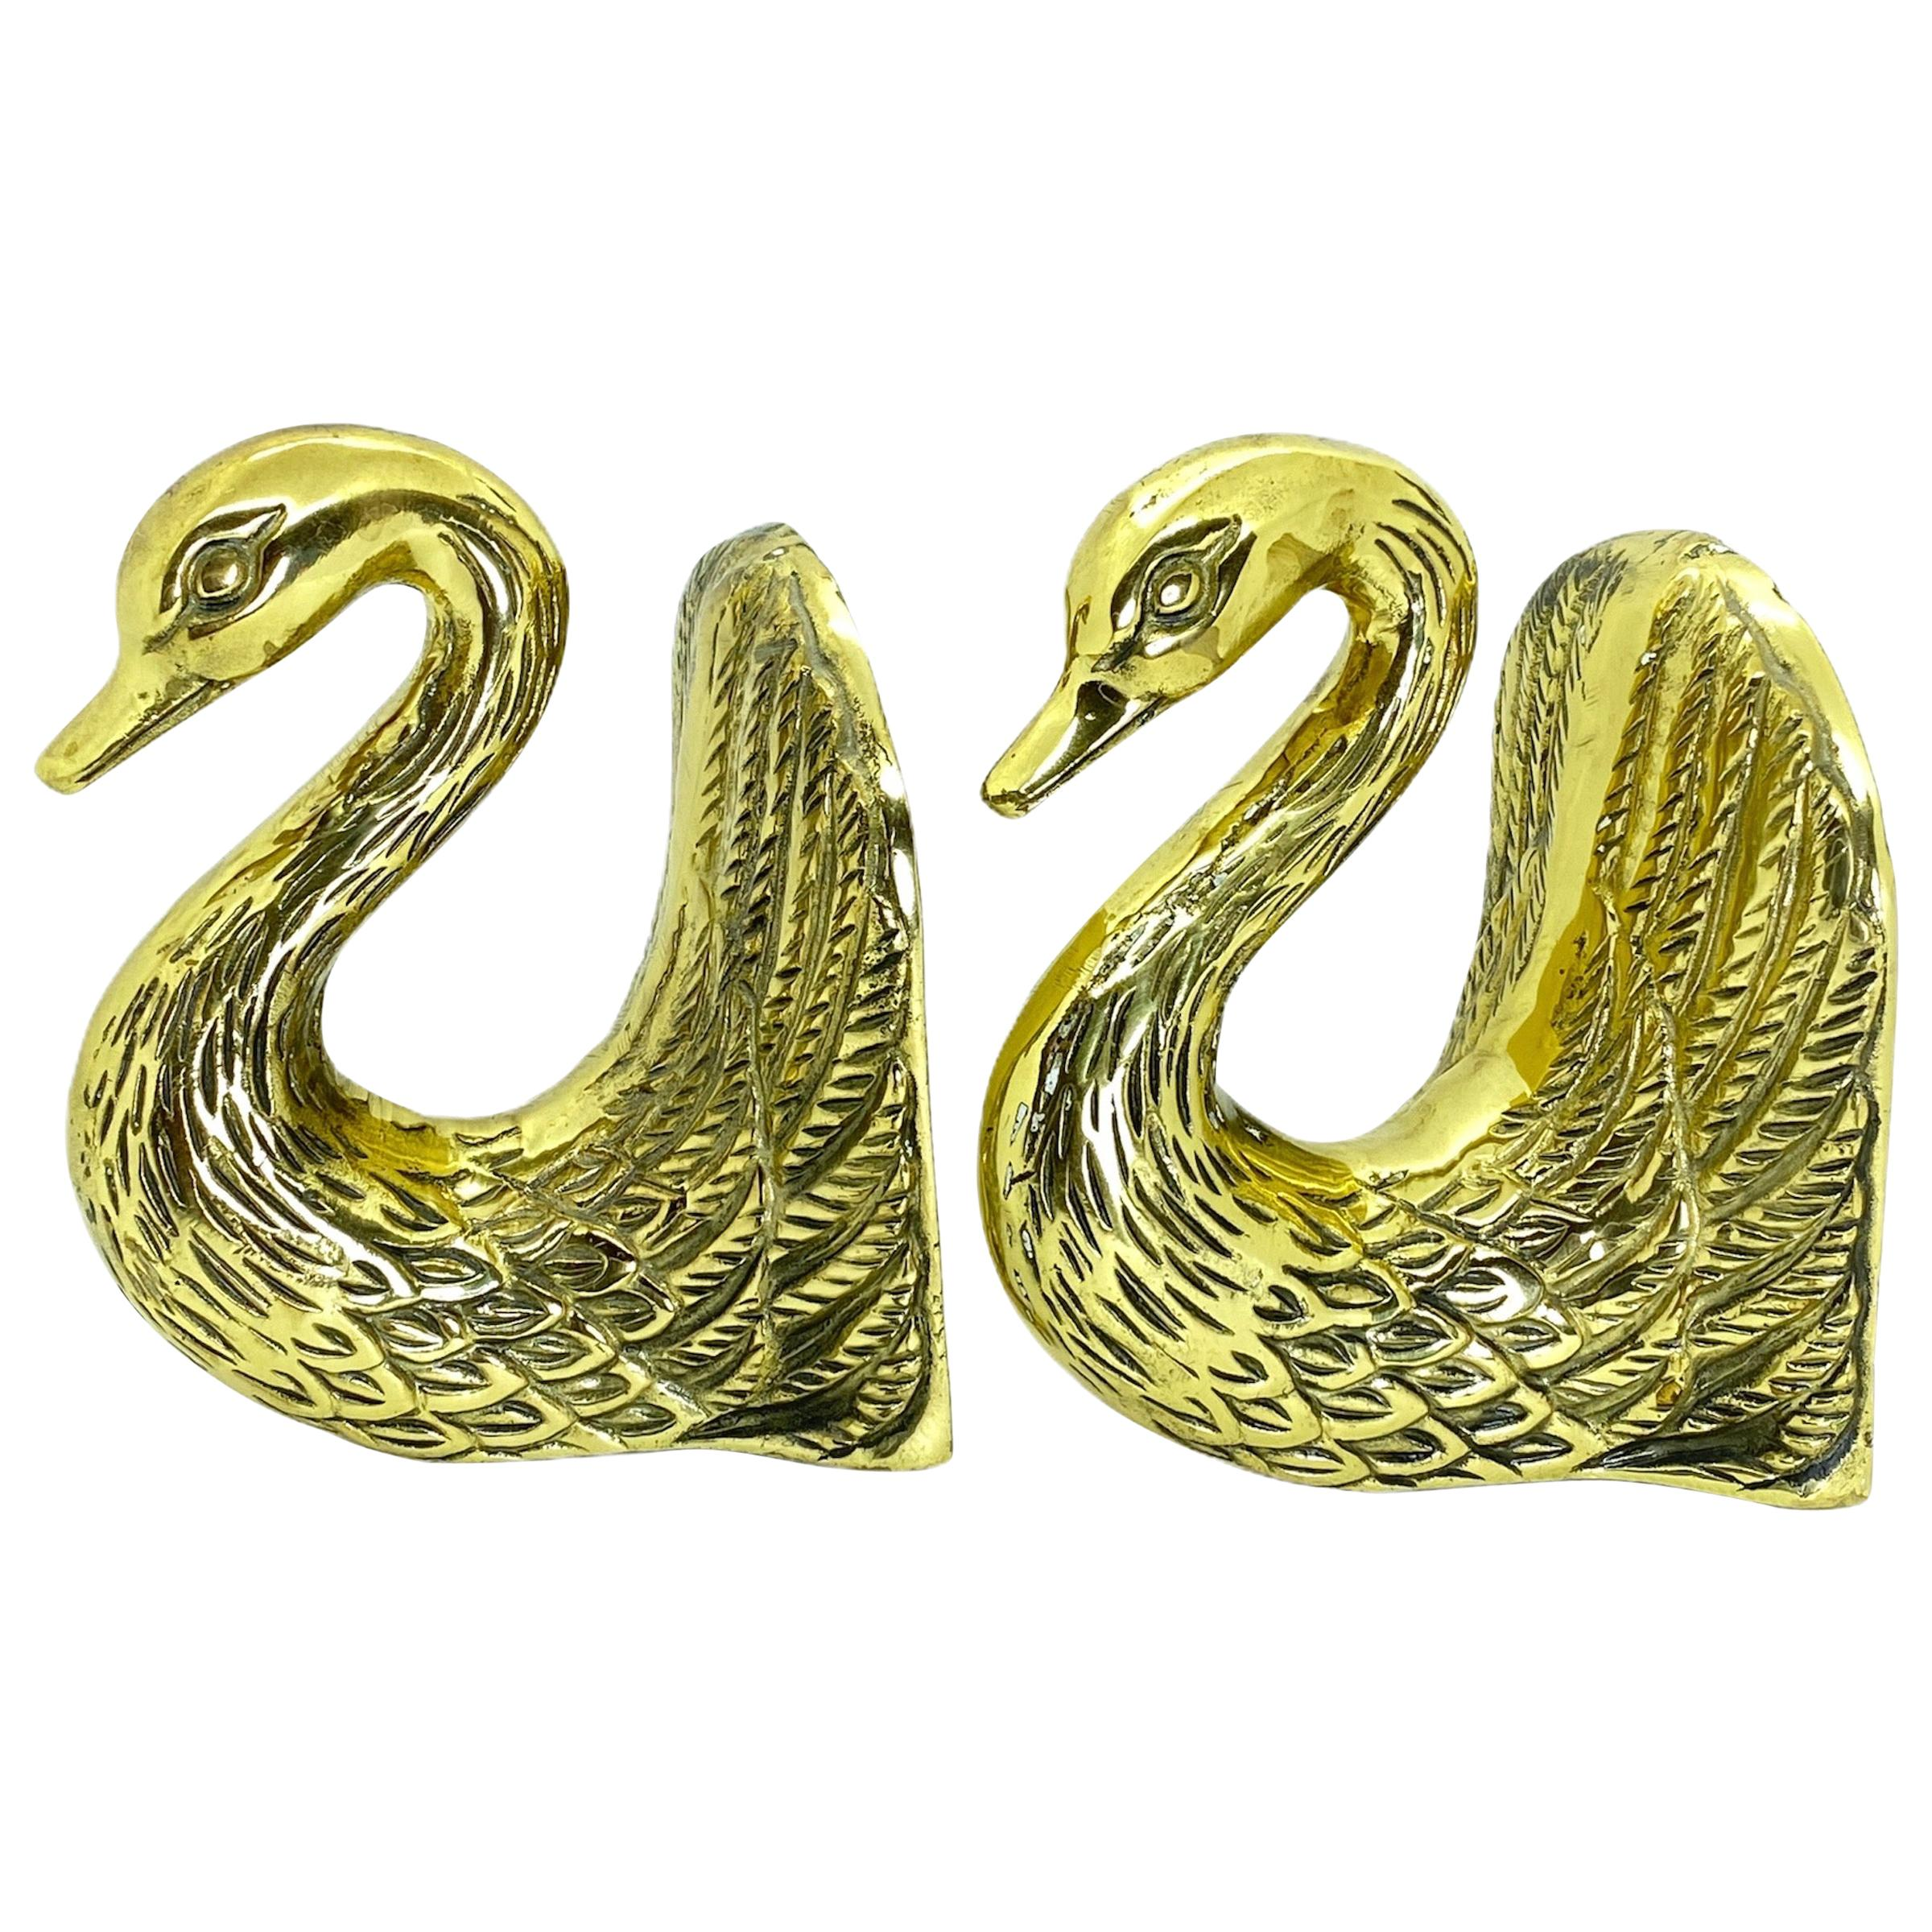 Pair of Vintage Polished Cast Brass Swan Bookends, circa 1950